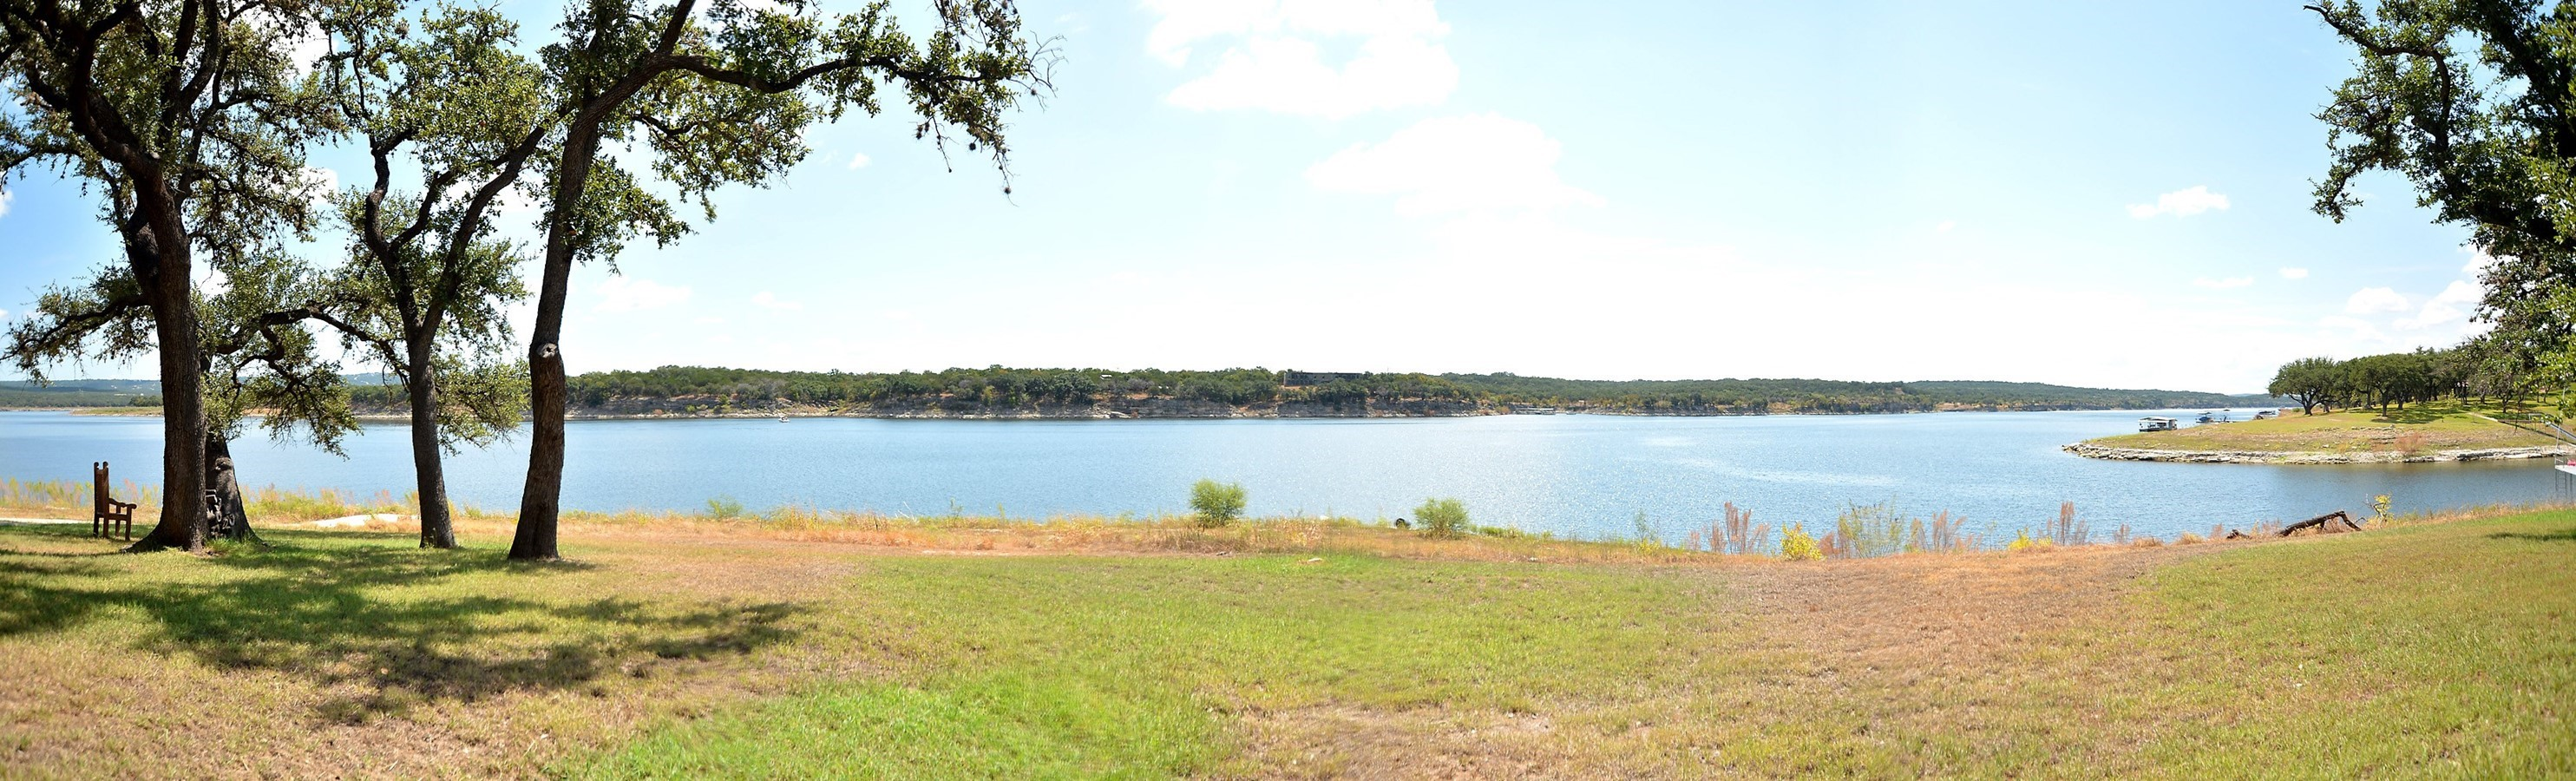 6339 old york road - Majestic Waterfront Home 750 Of Lake Travis Shoreline 6021 Circle J Rd Marble Falls Tx 78654